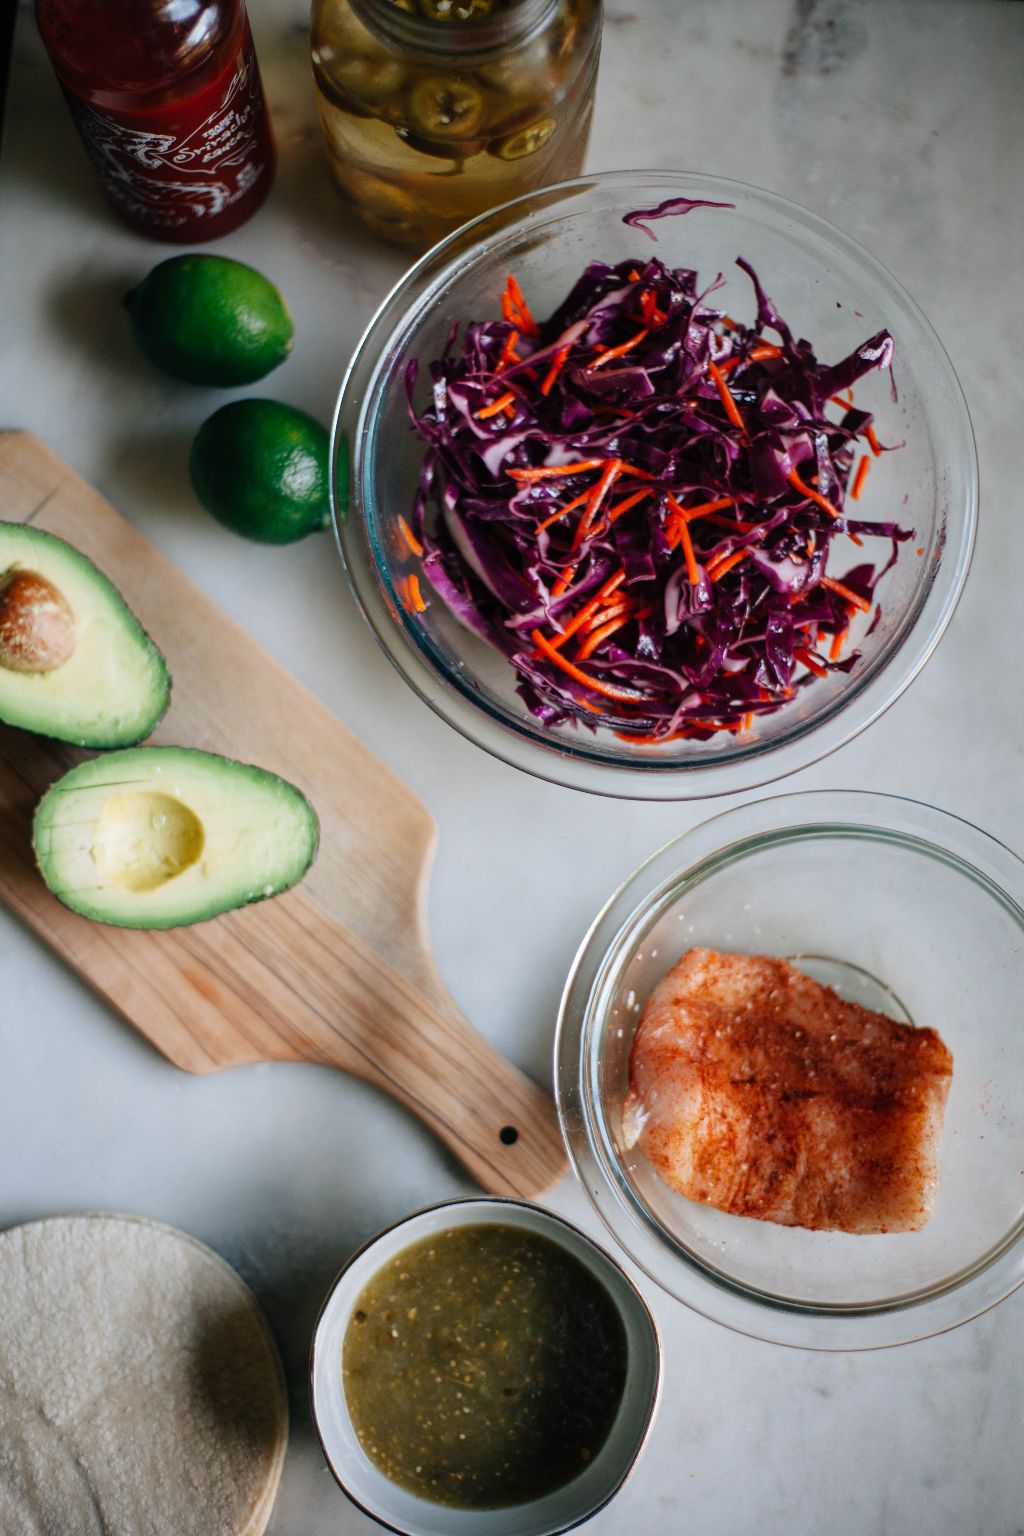 Easiest Ever Fish Tacos with Cabbage Slaw - Tastemaker Blog